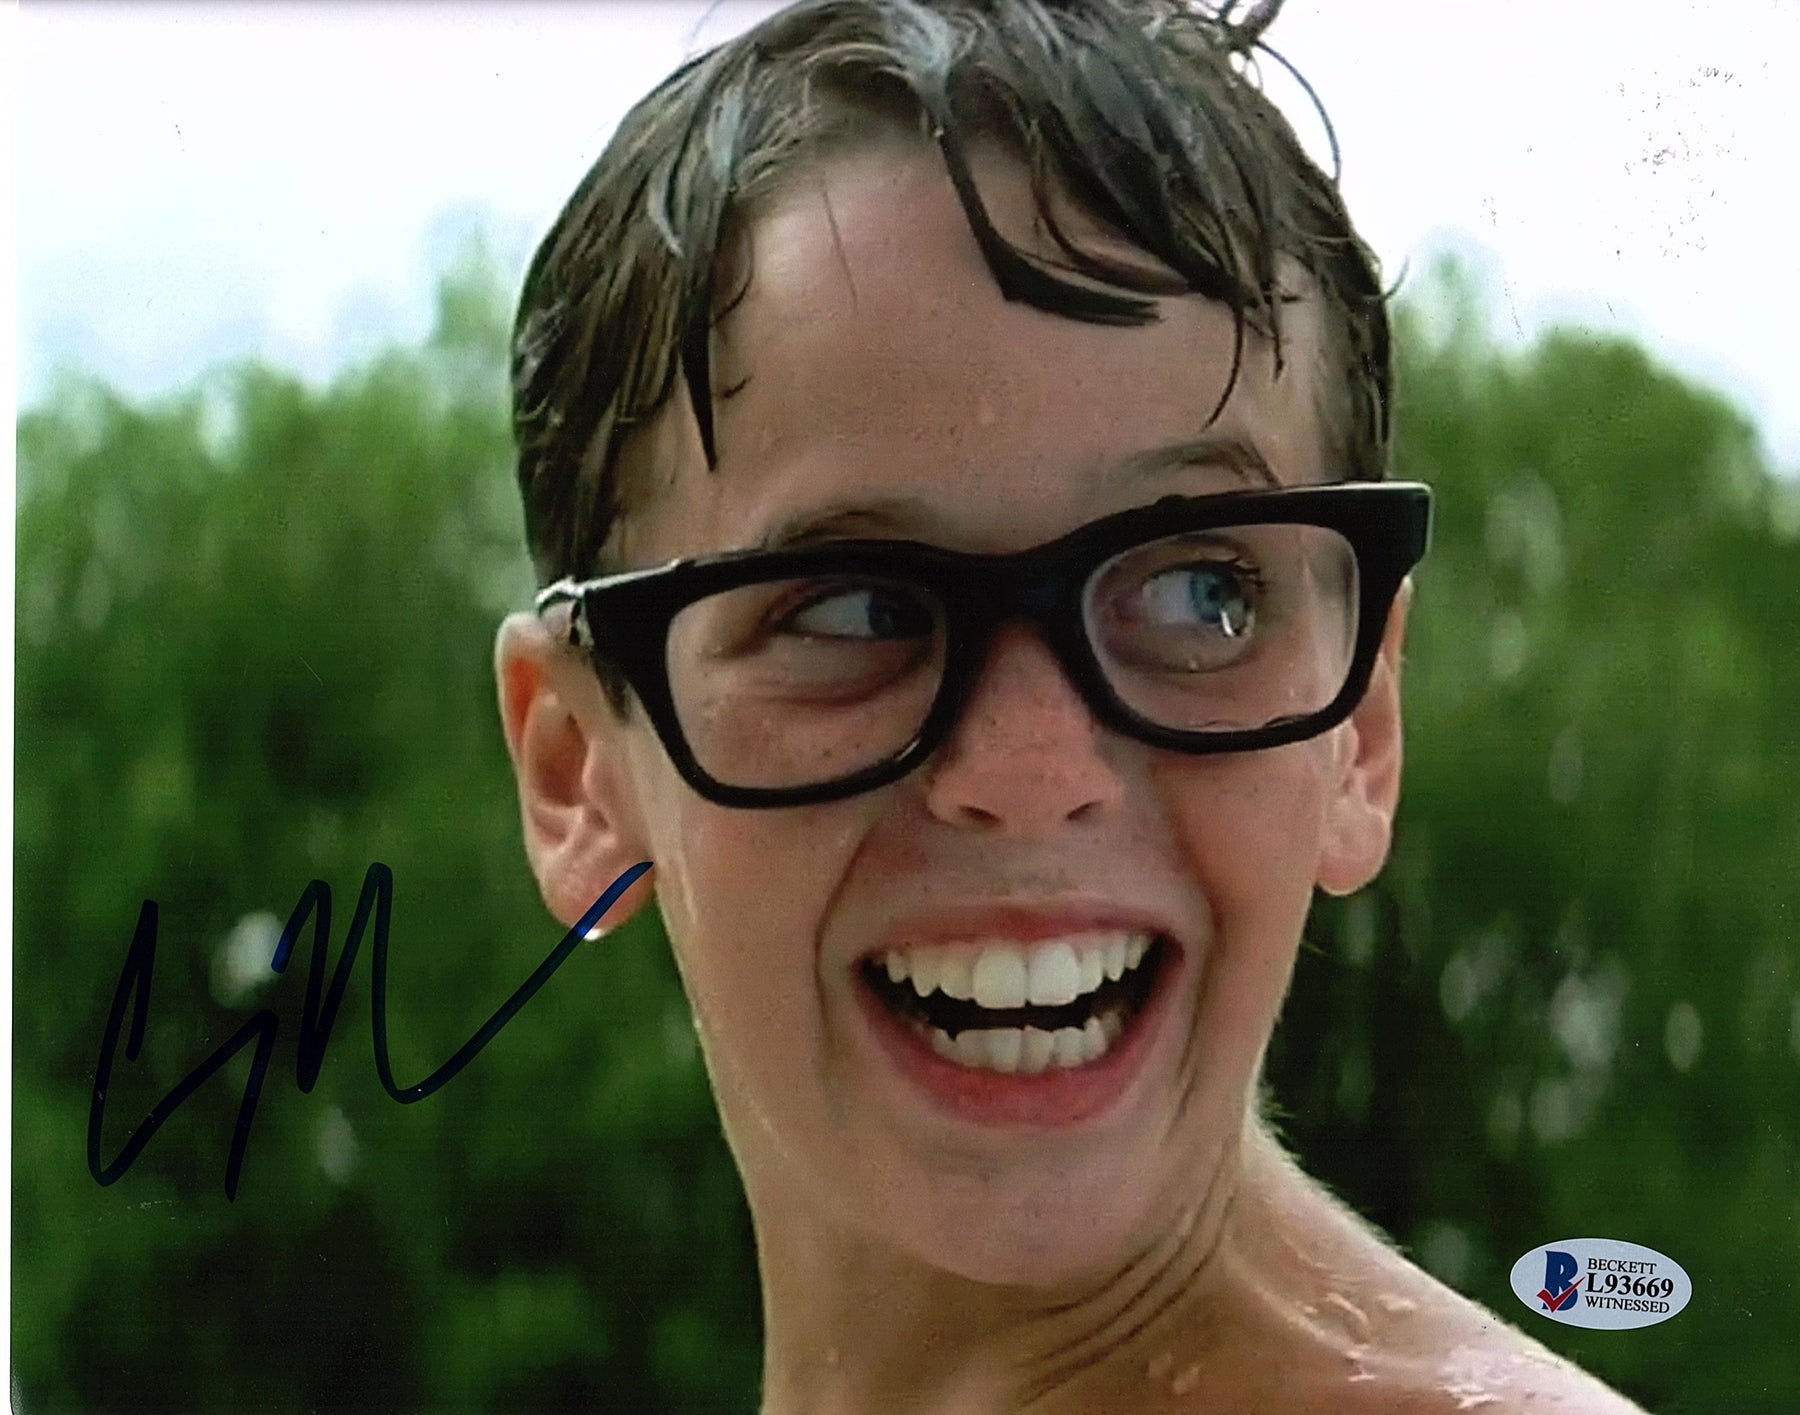 Chauncey Leopardi Signed 8x10 Photo Sandlot Squints Autograph Beckett COA Z2